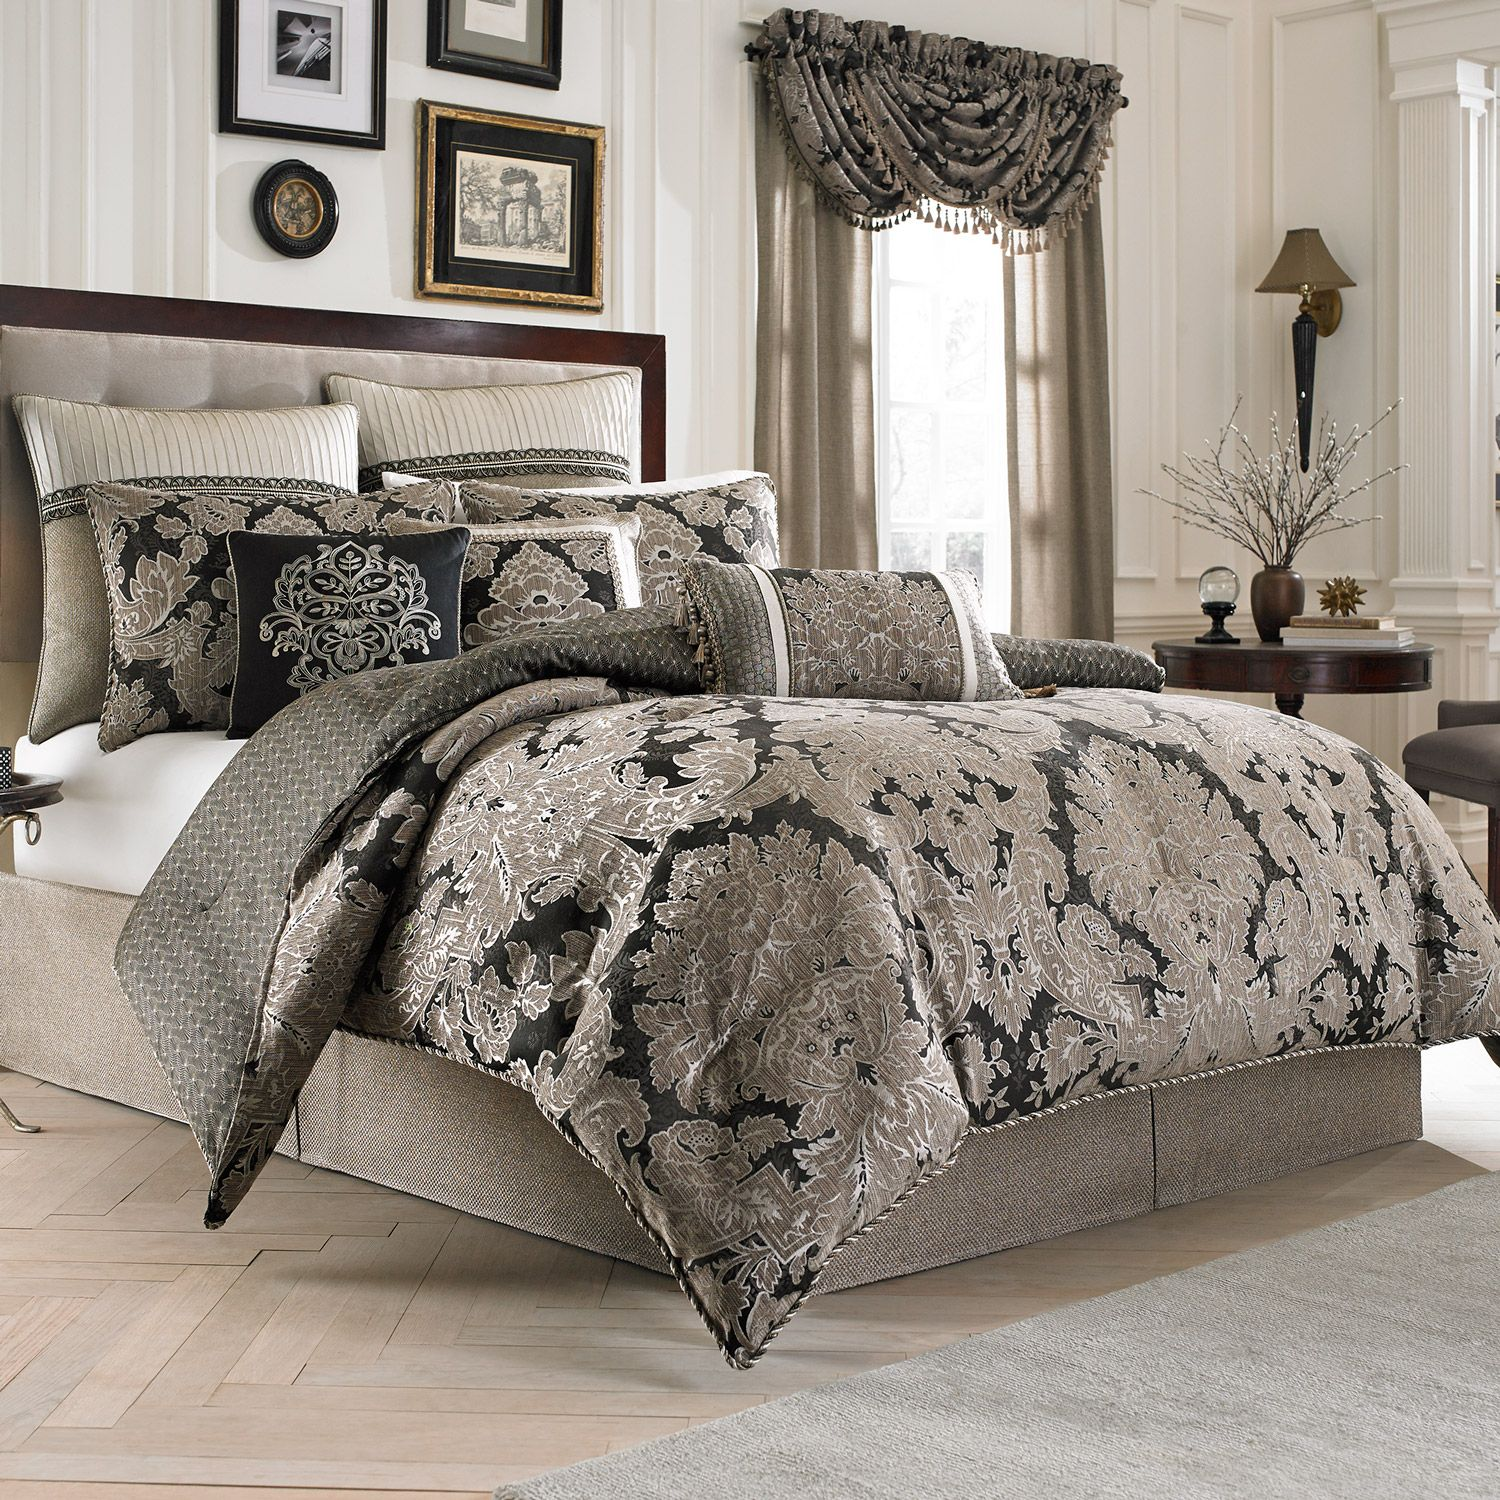 Amazing california king bedding for bedroom design with california king bed frame